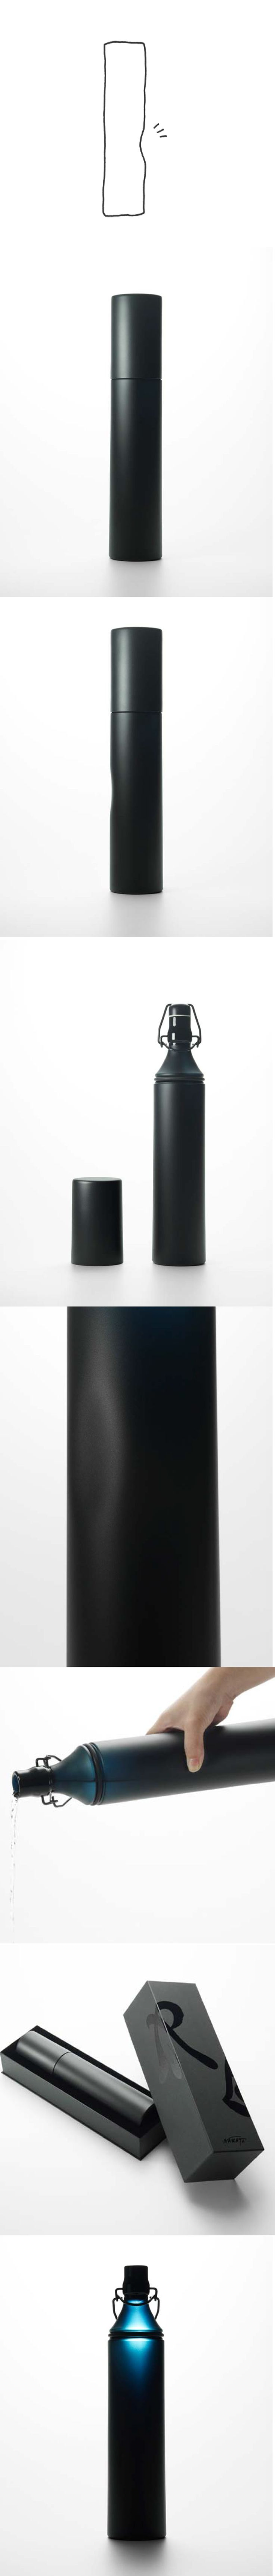 N Bottle by Nendo for  Nakata Hidetoshi Matte black sake bottle cylinder with slight dimple on side for hand rest.